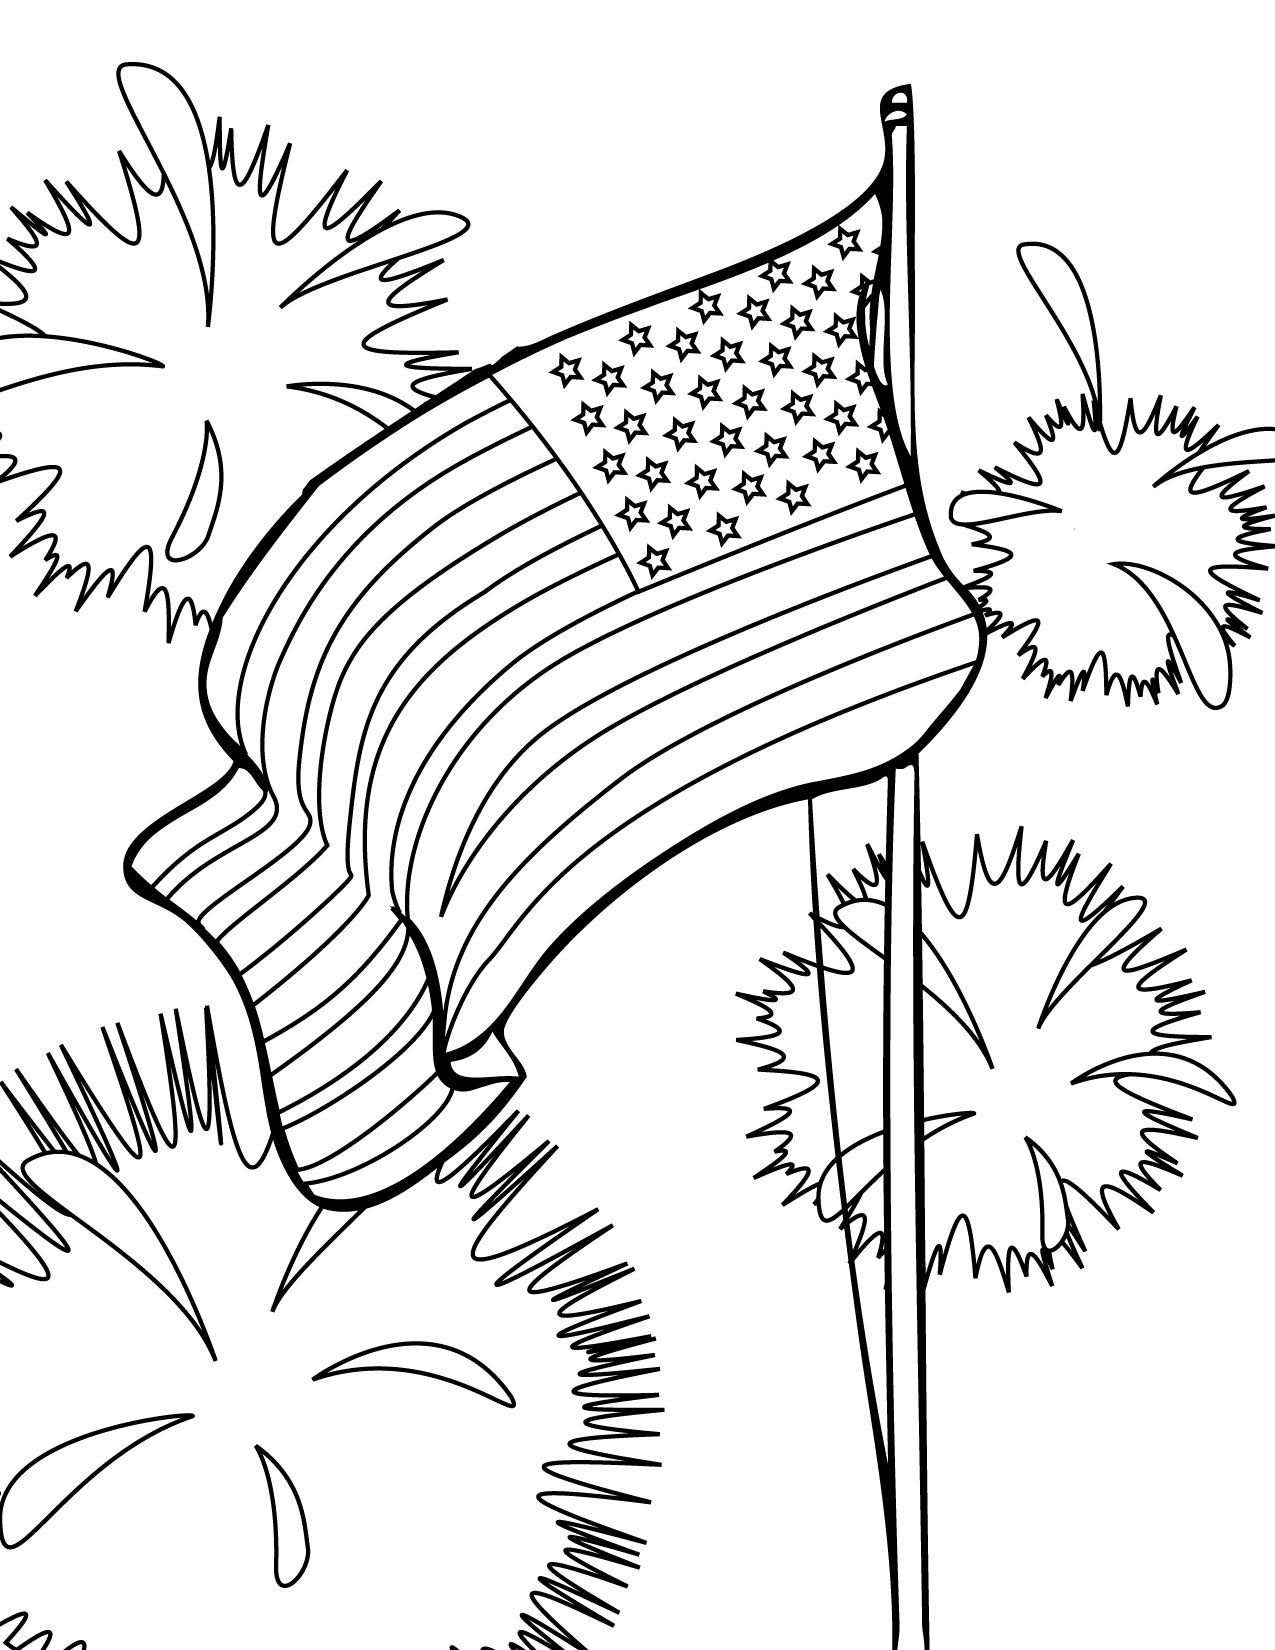 fourth of july usa coloring pages for preschool kindergarten and elementary school children - Elementary Coloring Sheets